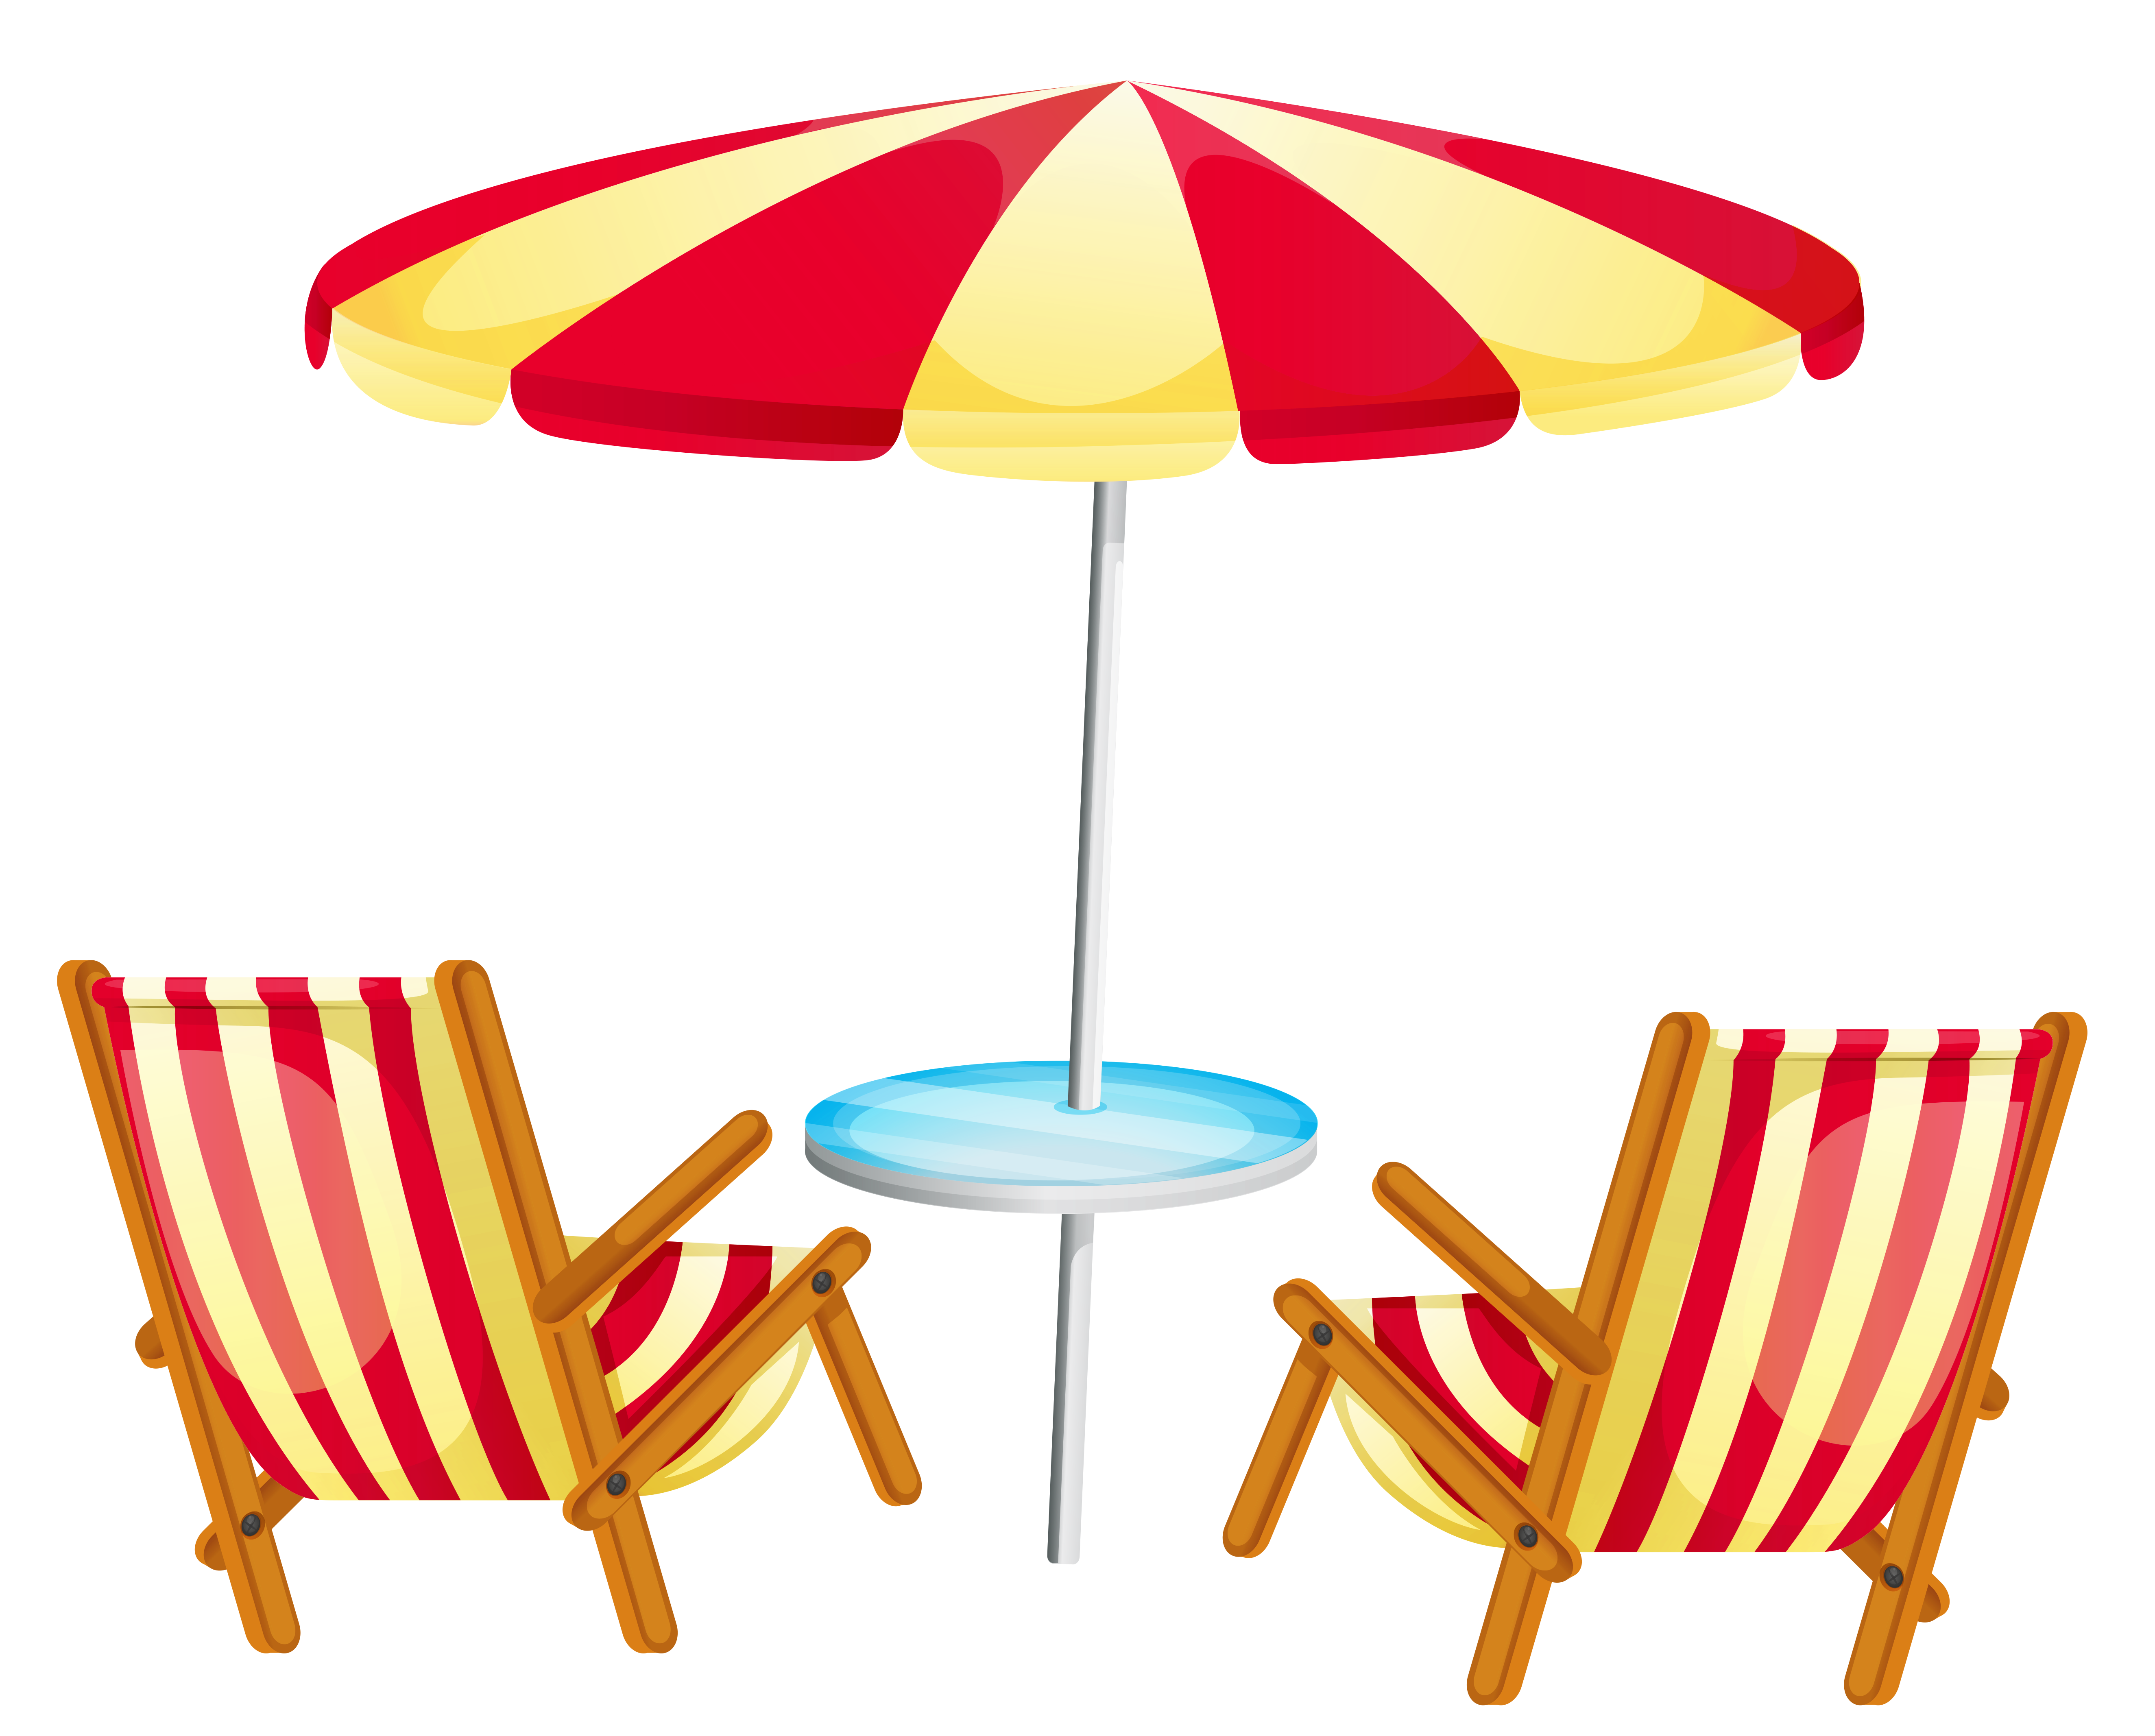 Clip Umbrellas Patio Umbrella Transparent Png Clipart Free